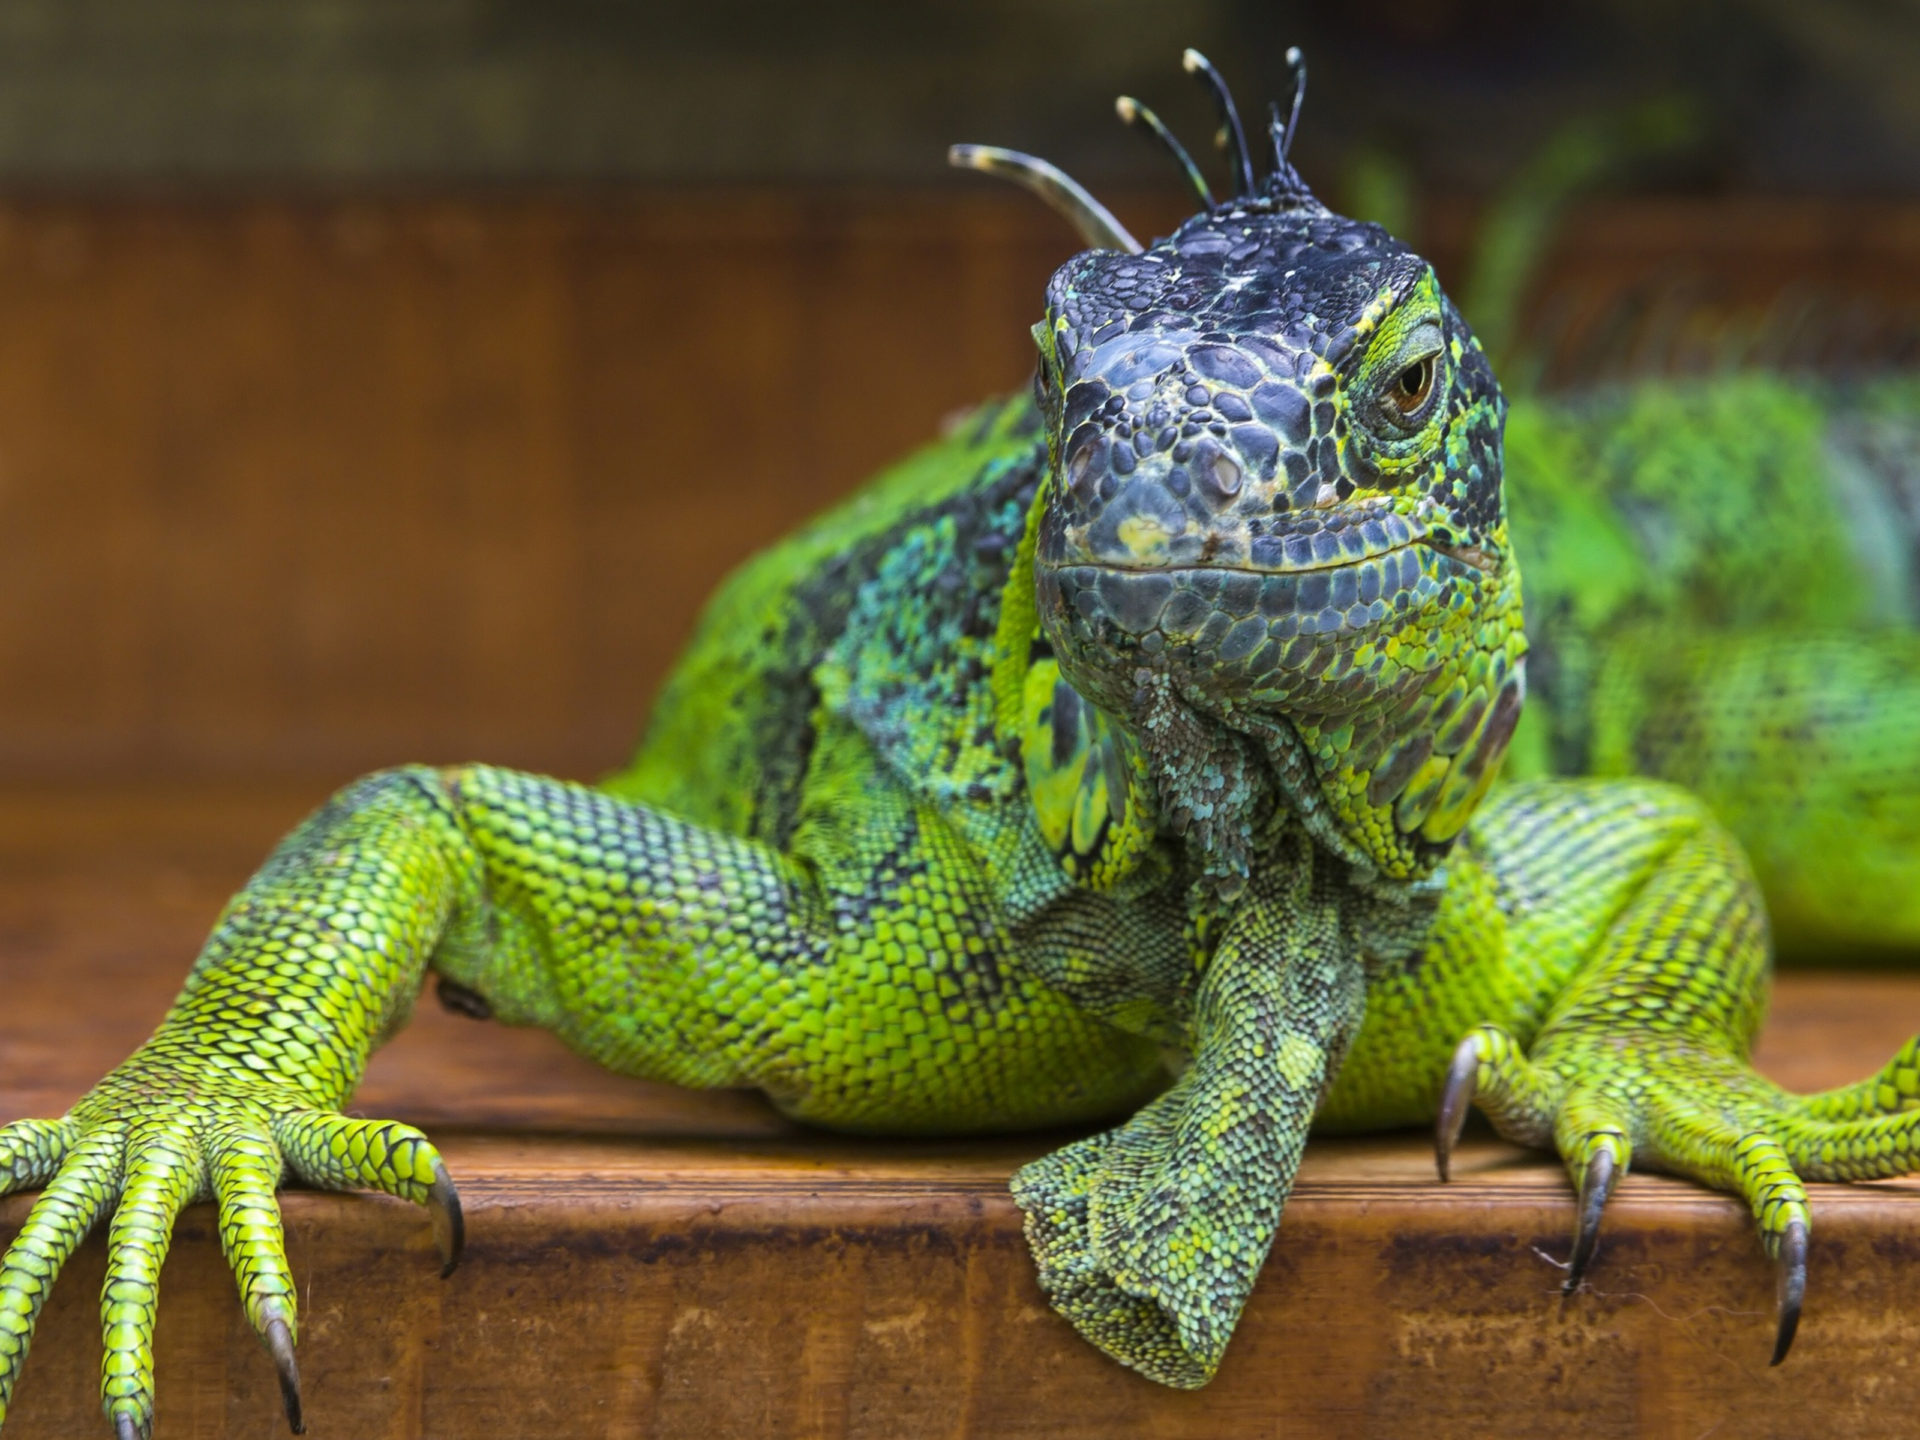 Free Download Cute Baby Wallpaper For Pc Big Green Iguana Iguana Wallpaper Hd Wallpapers13 Com